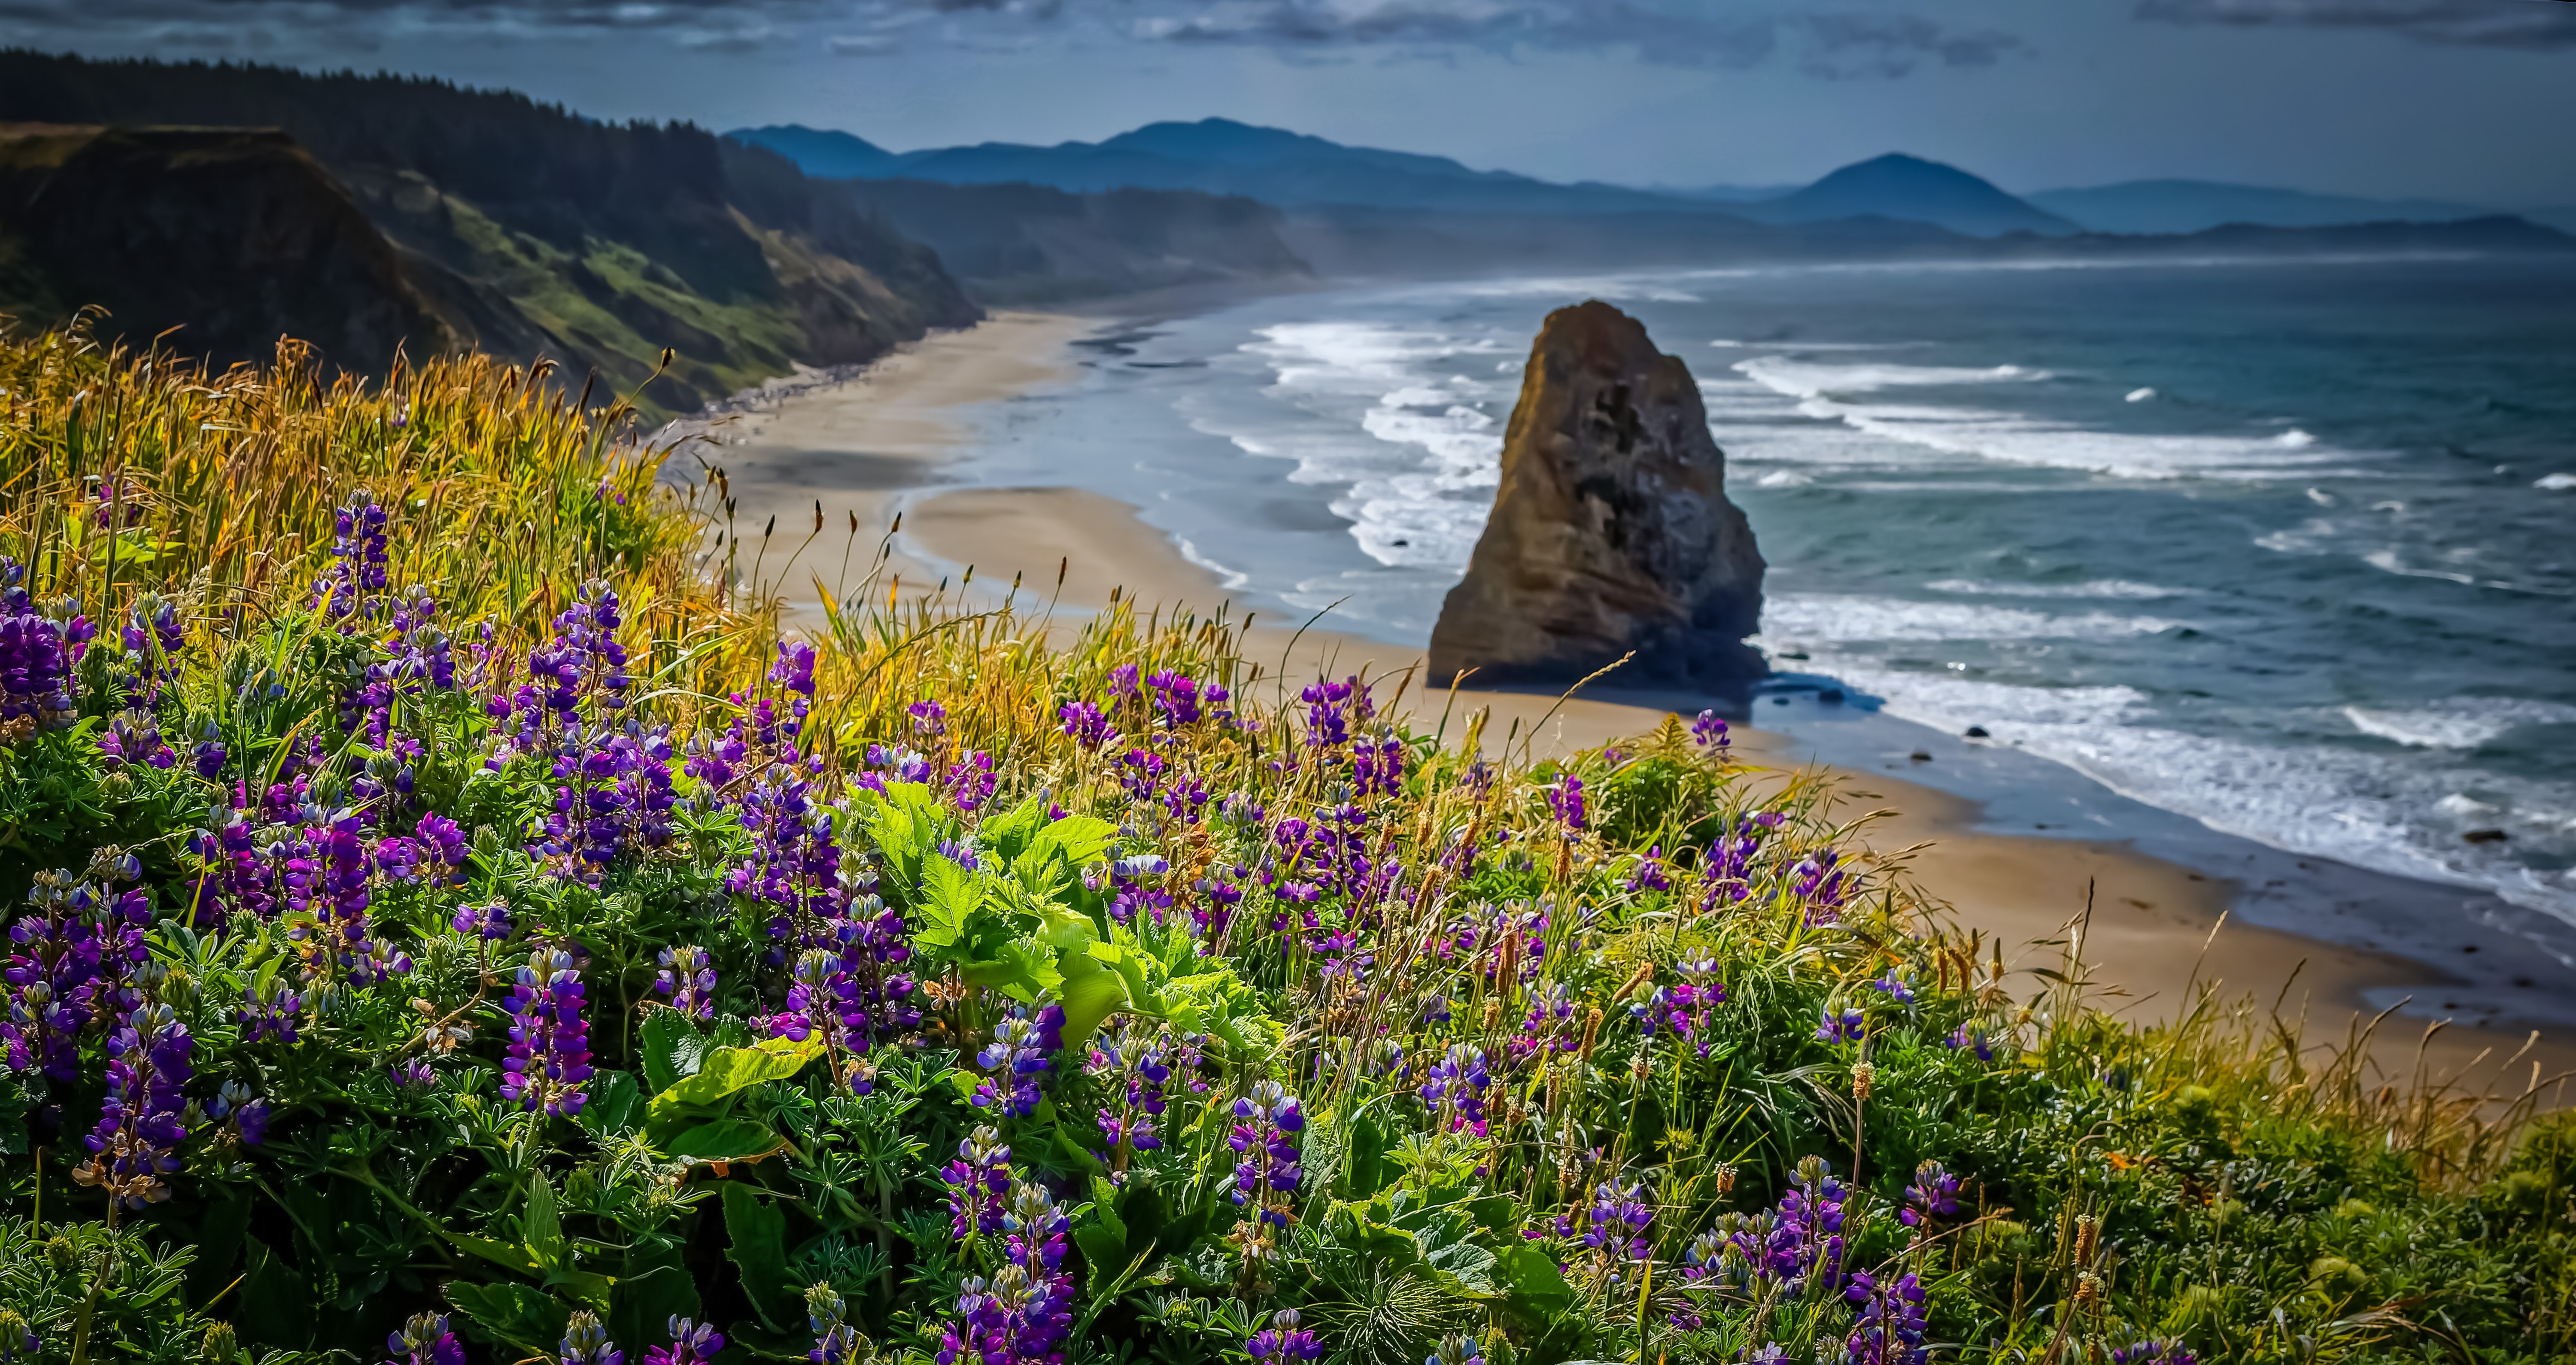 purple petaled flower field with ocean view at daytime